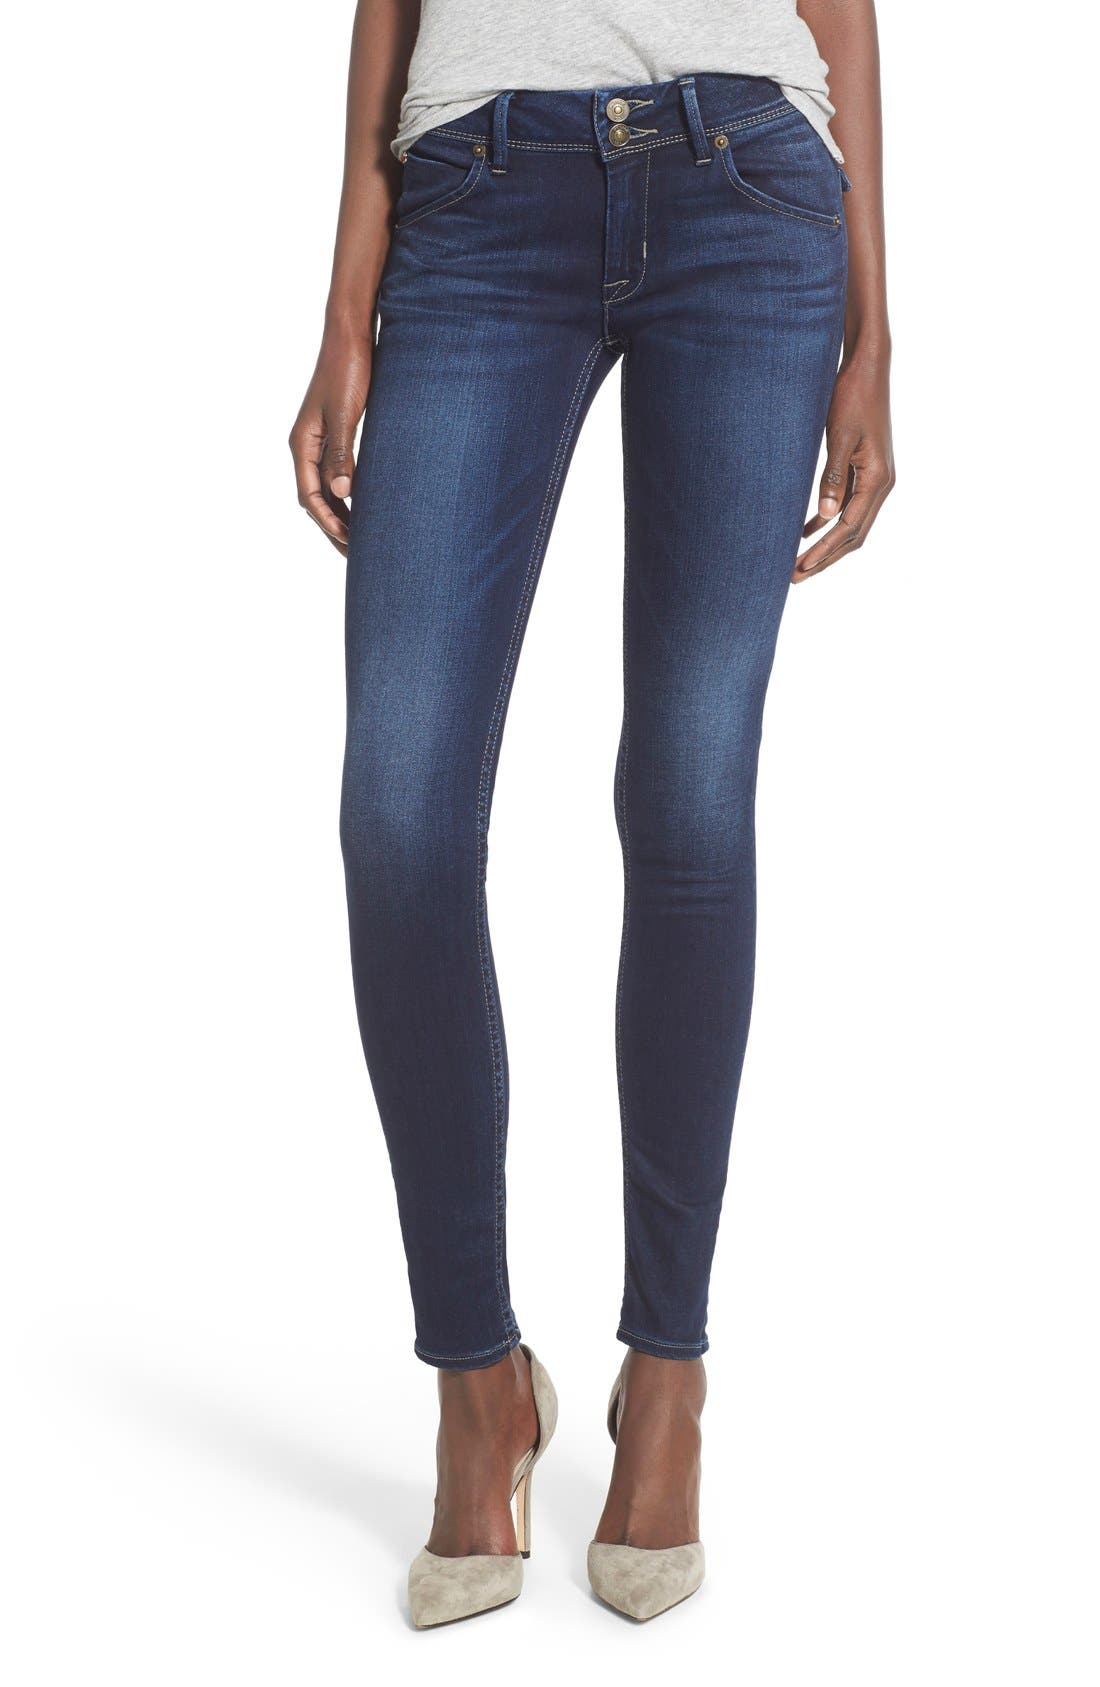 'Elysian - Collin' Mid Rise Skinny Jeans,                             Main thumbnail 1, color,                             CREST FALLS